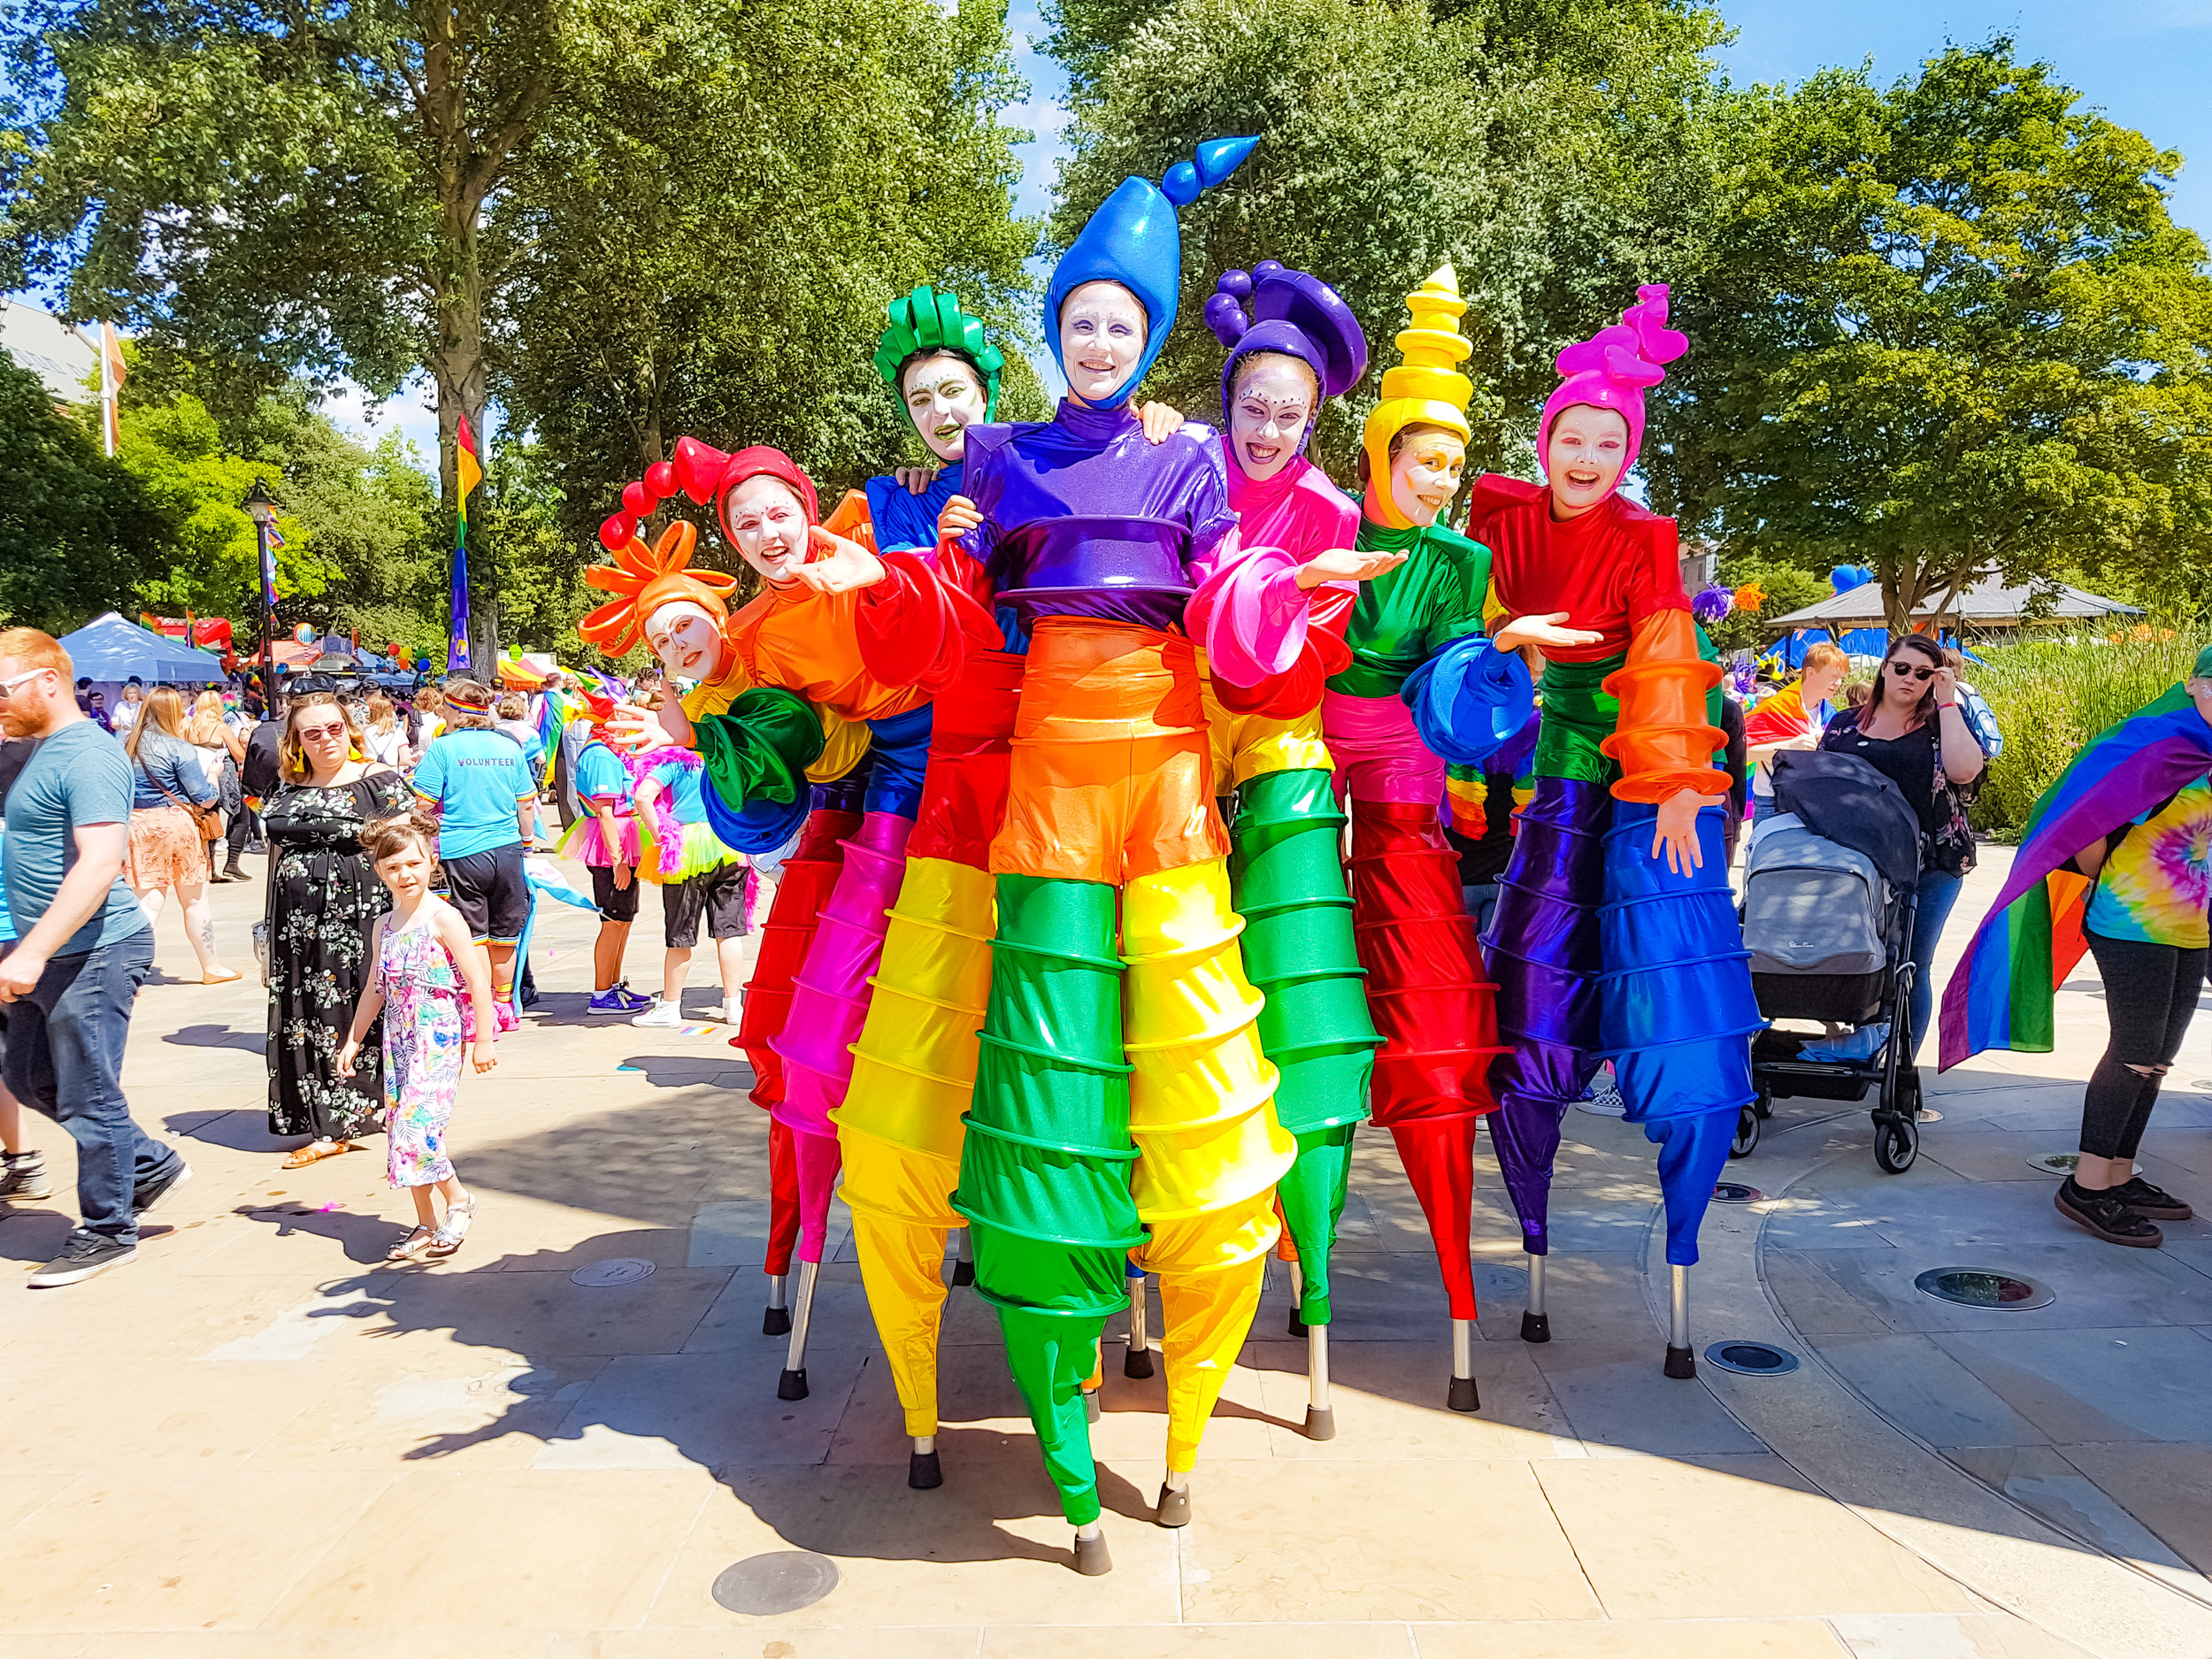 Rainbow_Carnival_Stilt_Dancers_Mixed_Colours_20180721_131721.jpg